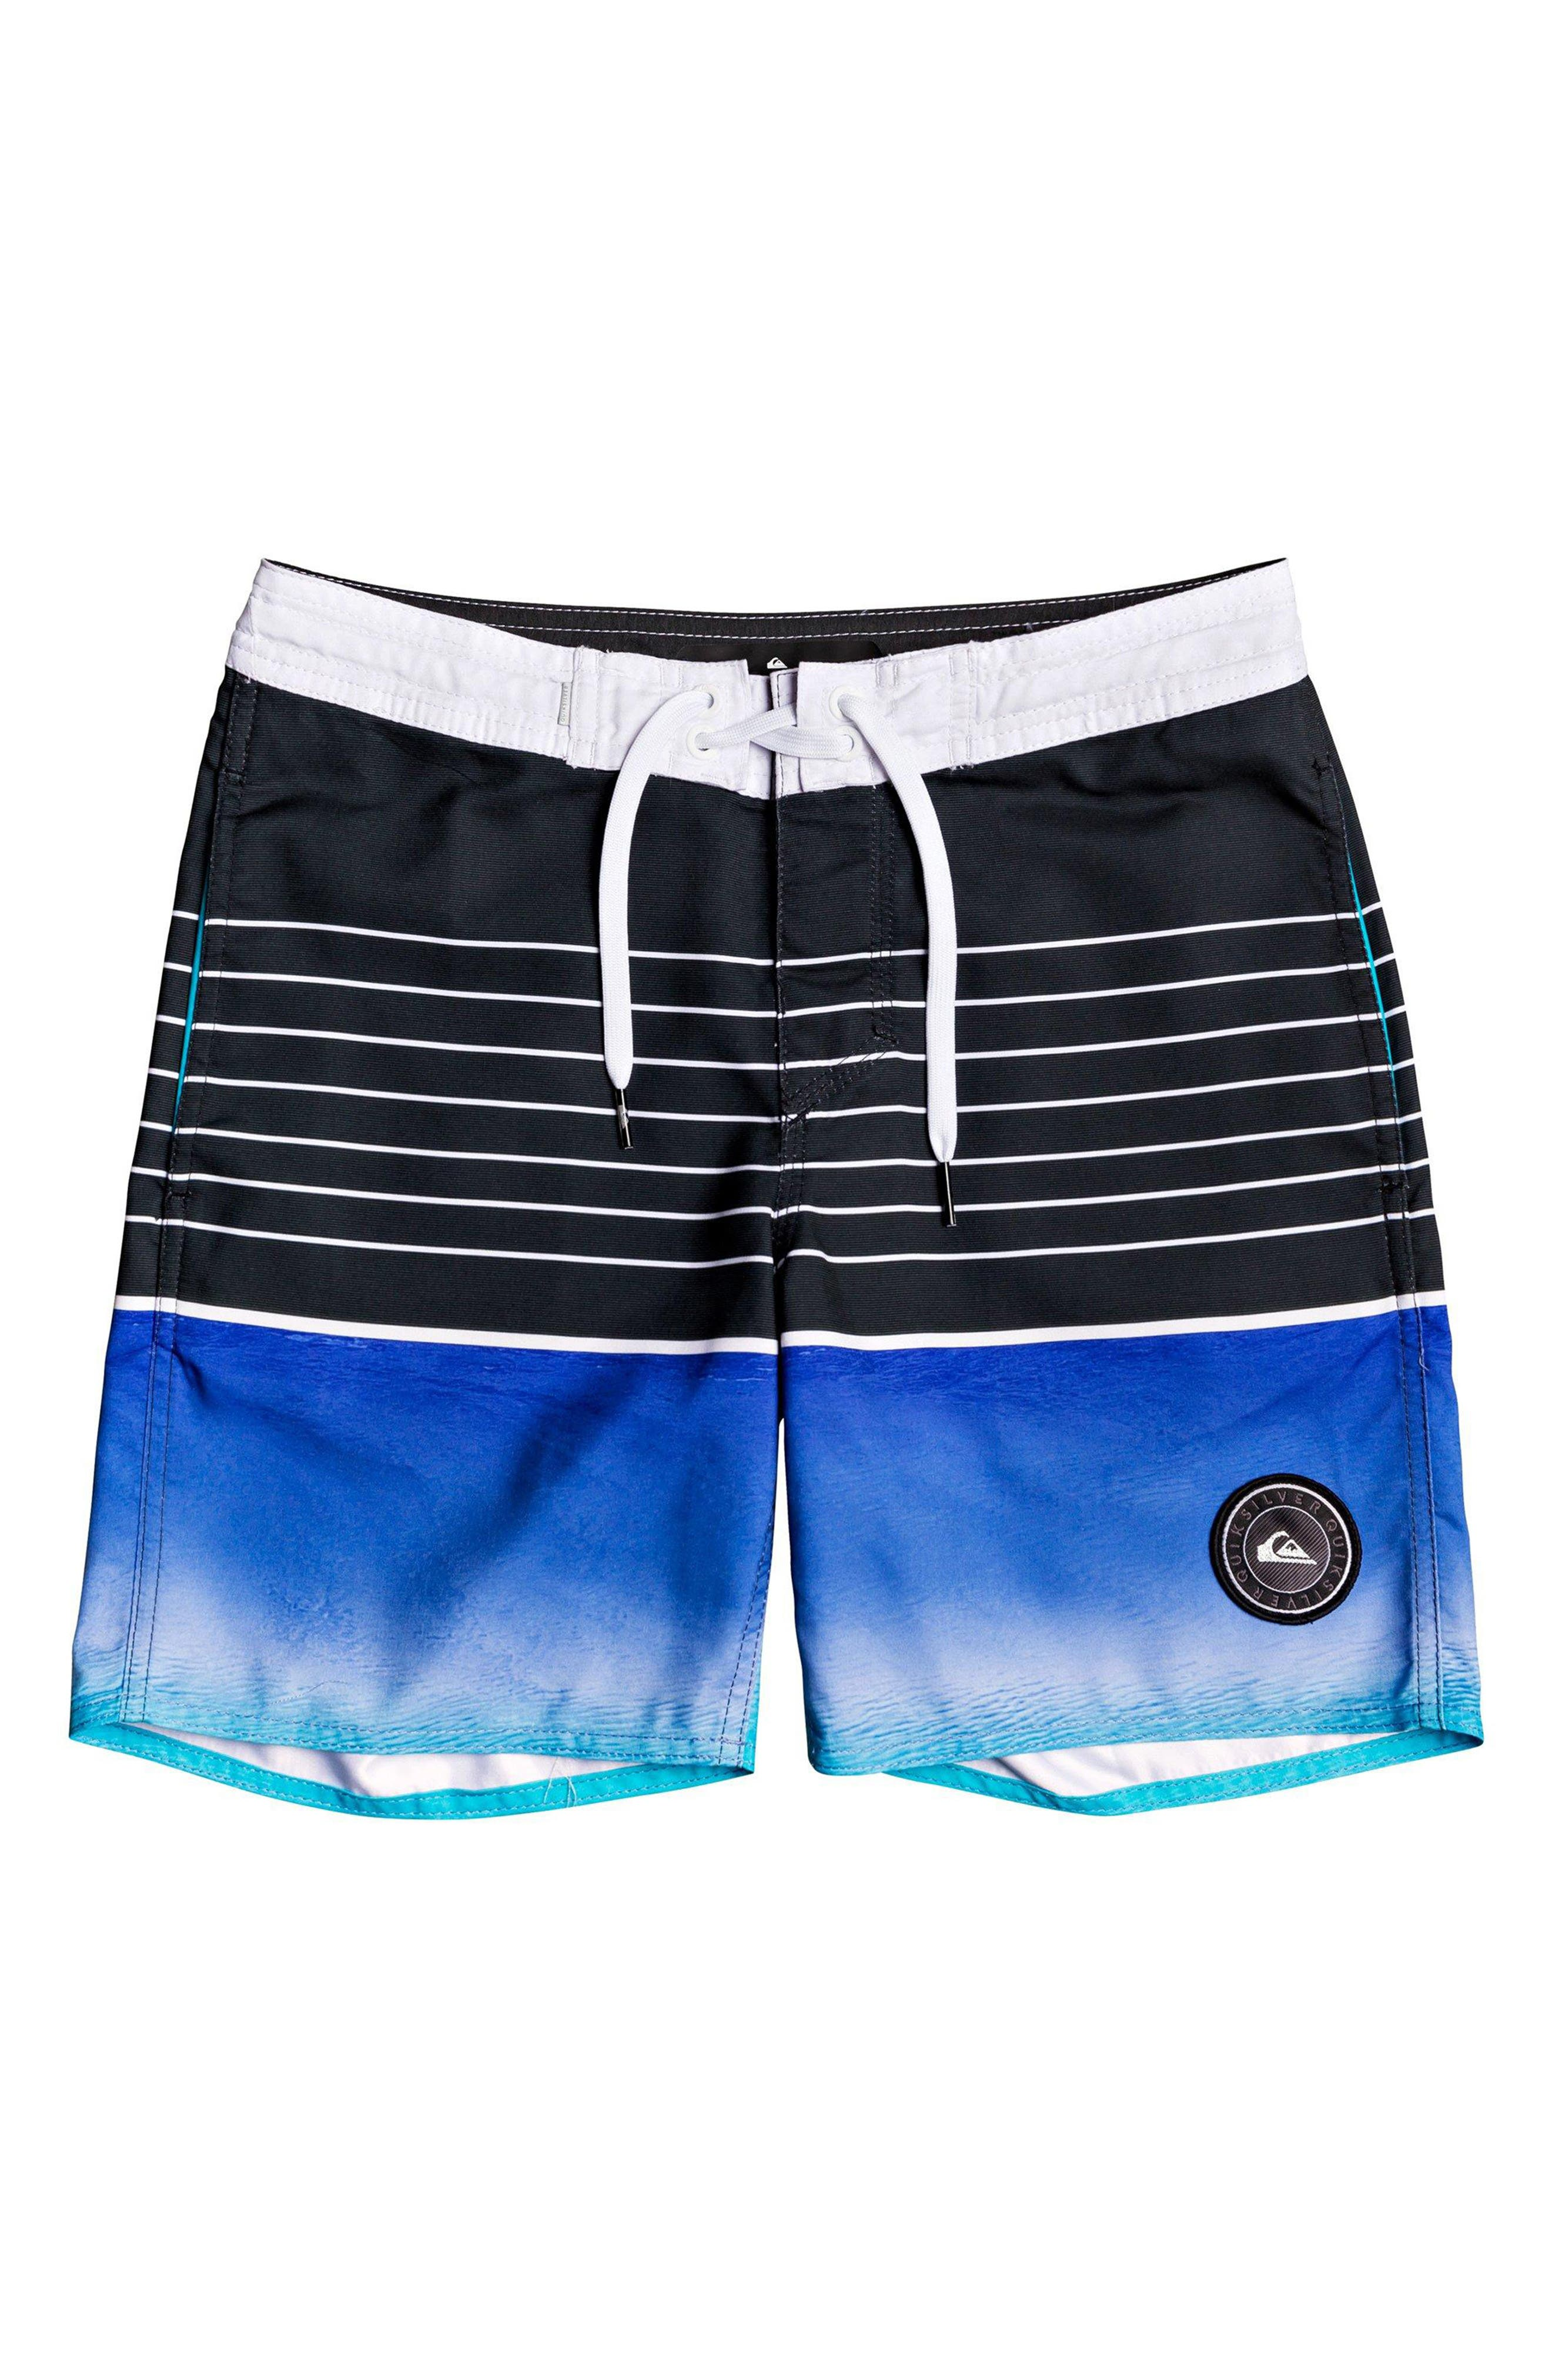 Boys Quiksilver Swell Vision Board Shorts Size 23  Blue